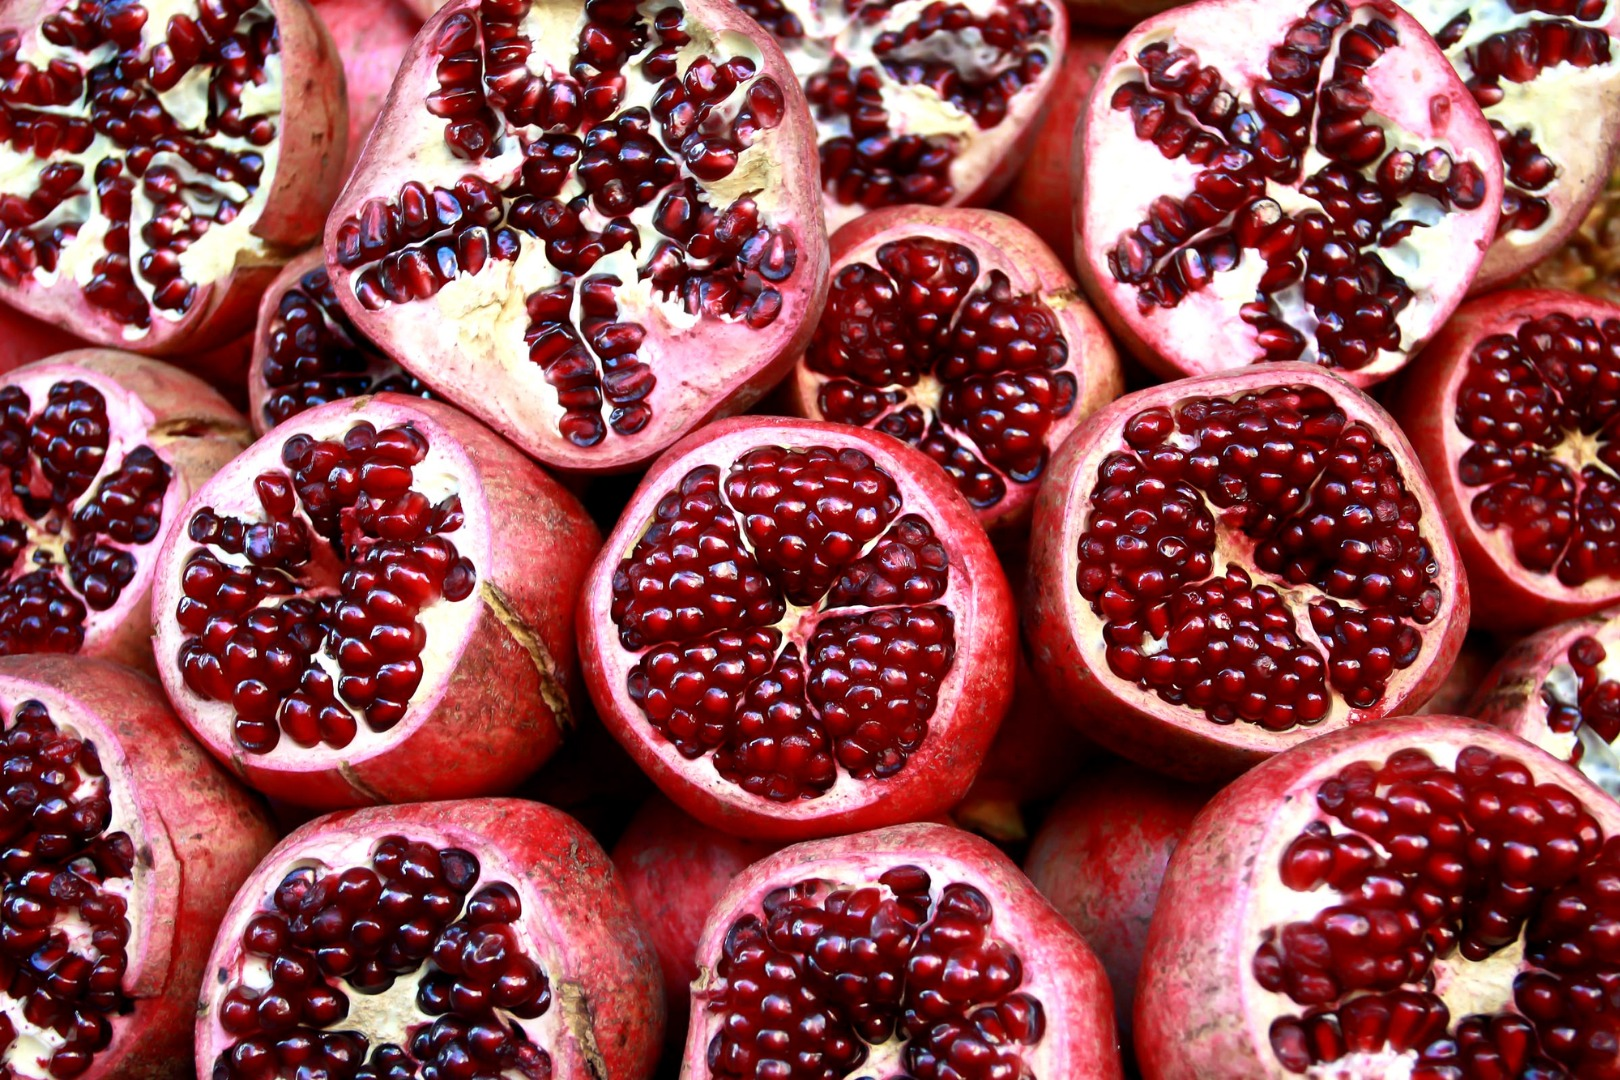 Anti-aging compound from pomegranates proves promising in human clinical trials